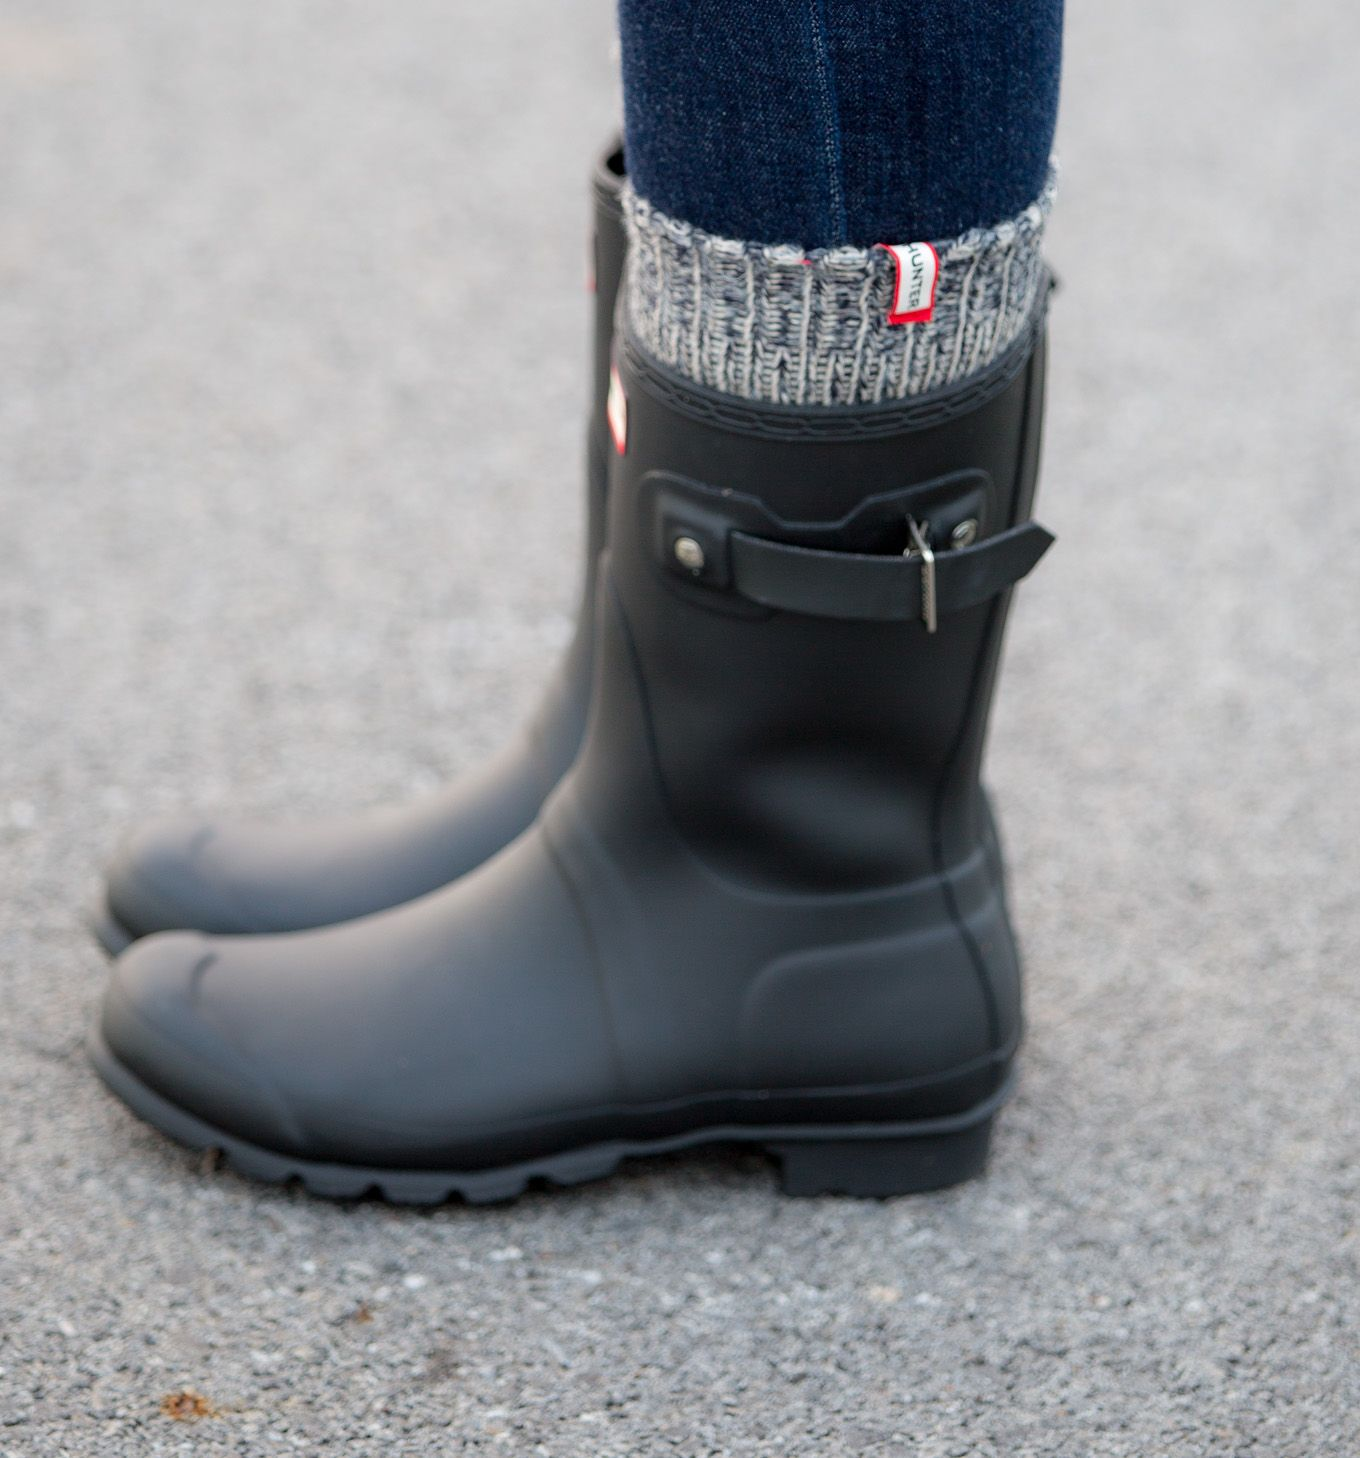 7c2c97168fd1 Hunter Boots for winter with socks for extra warmth!